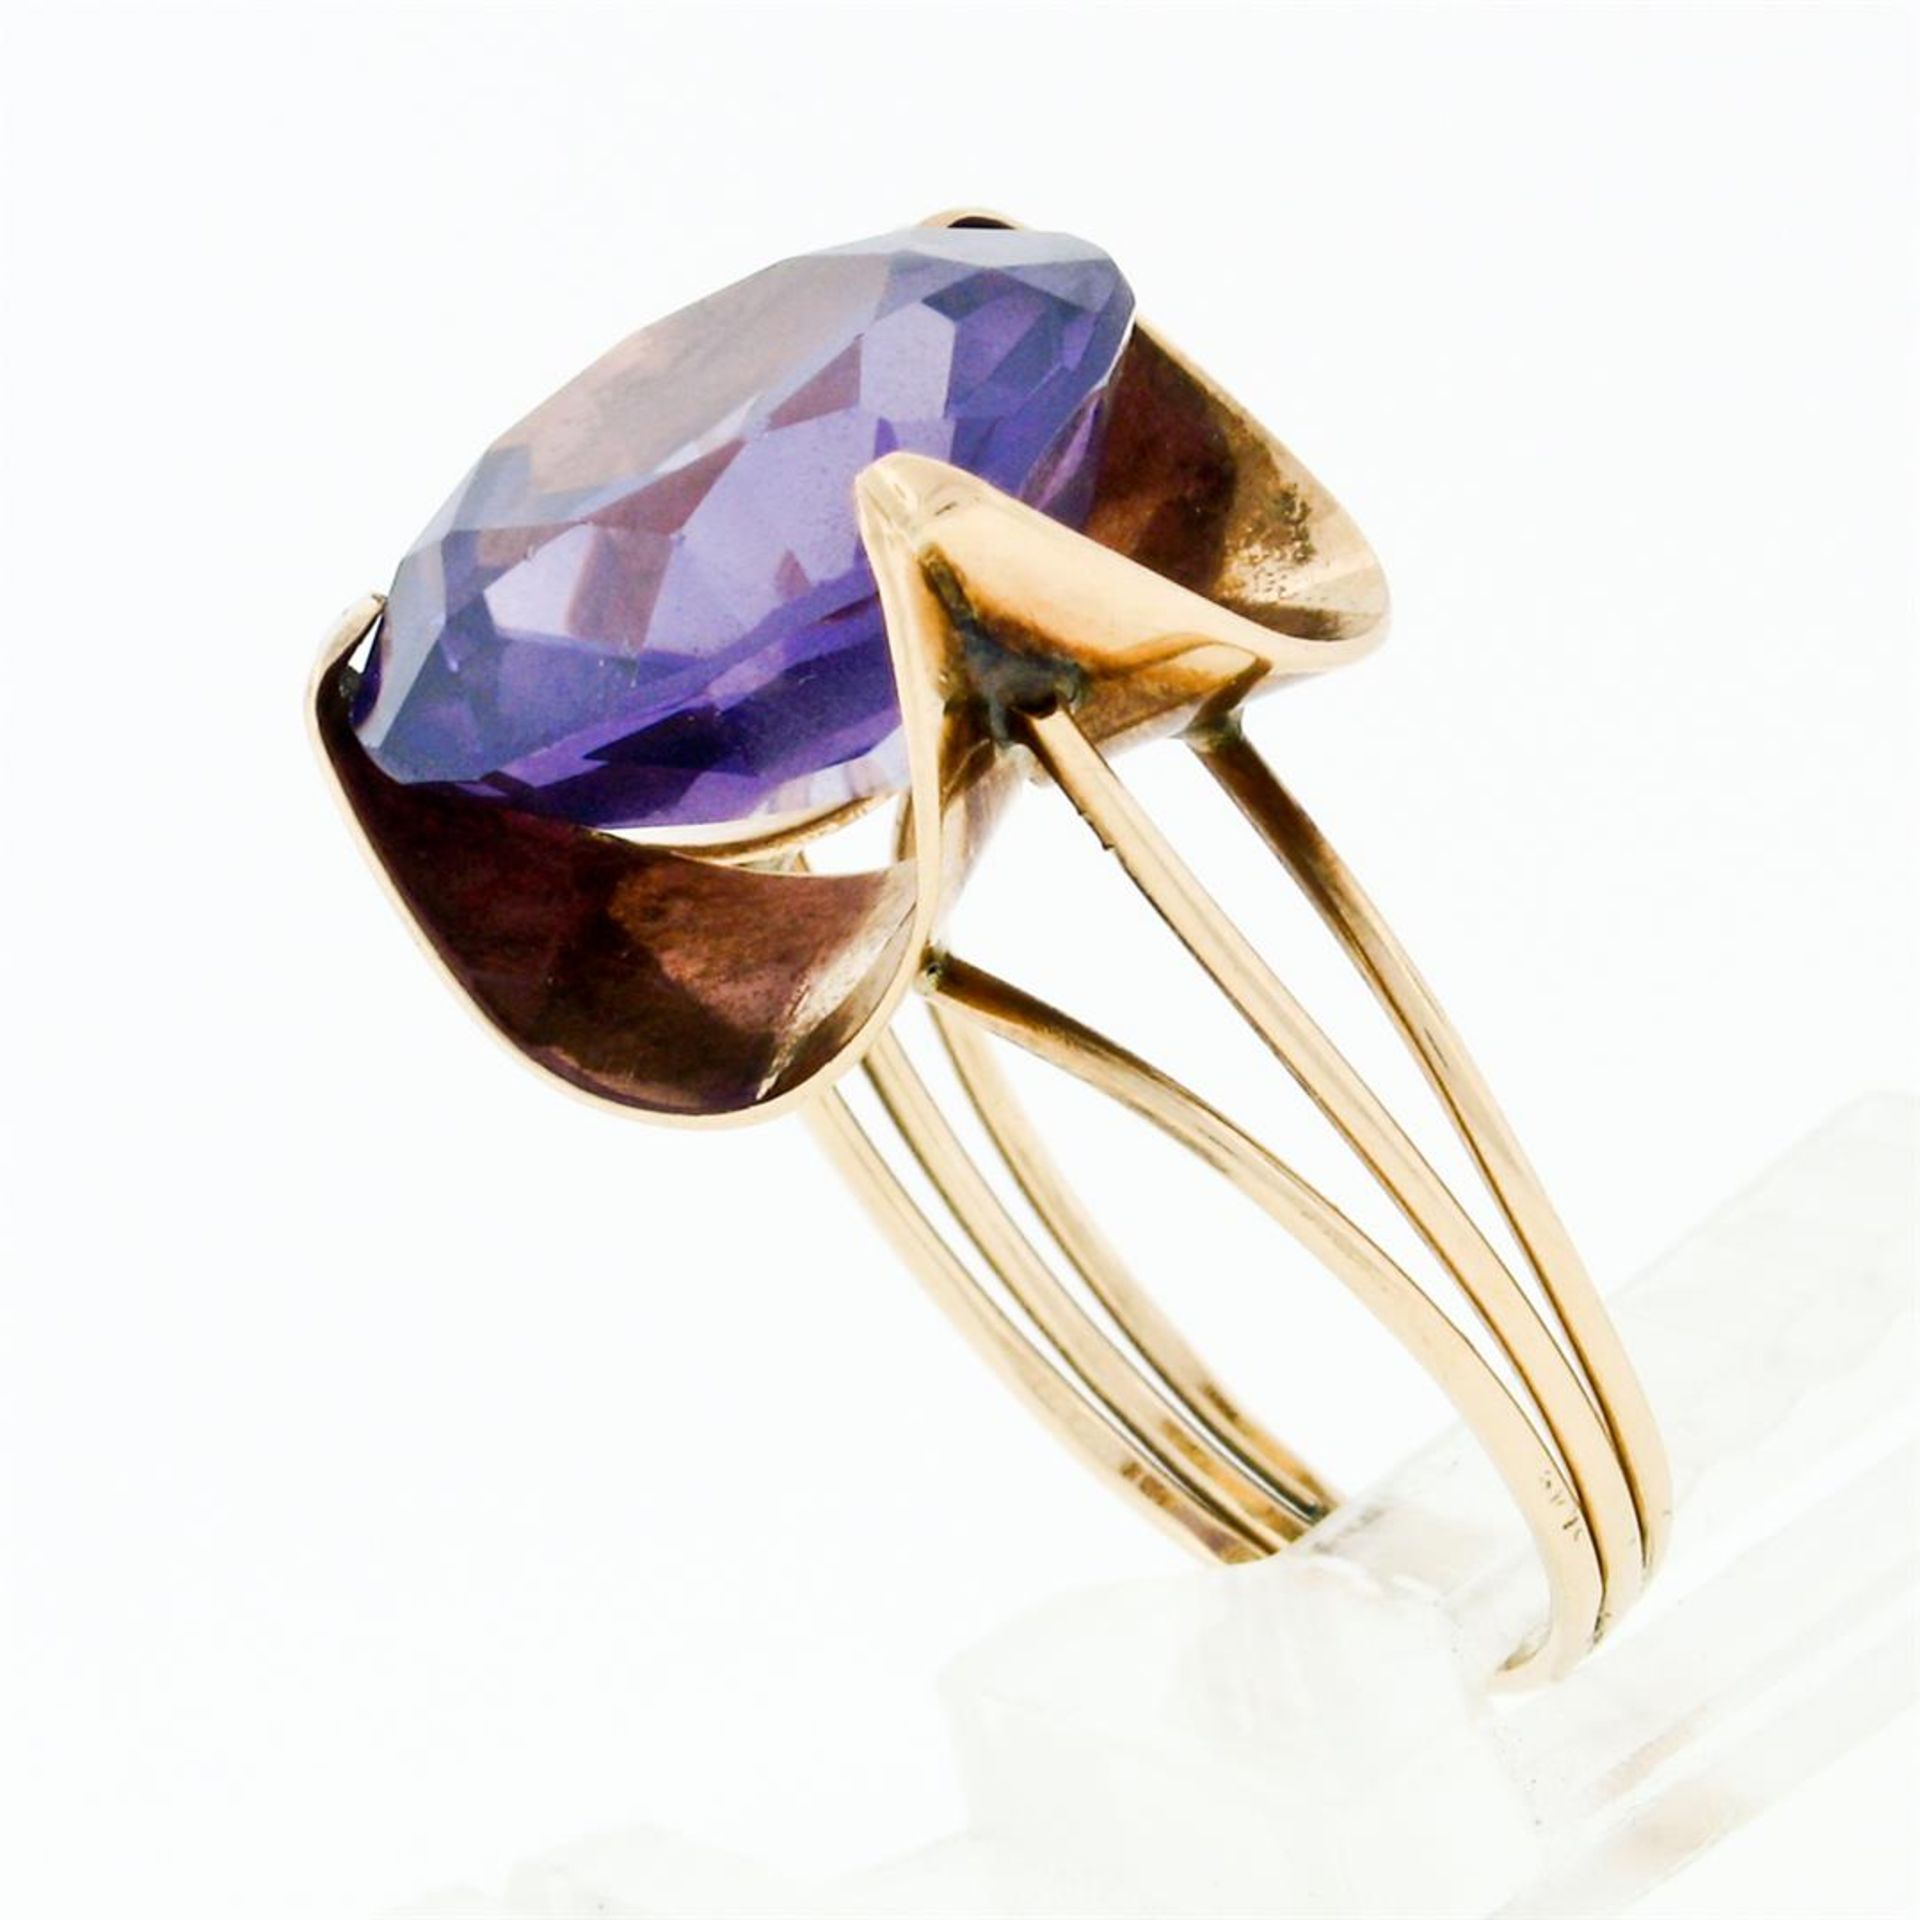 Retro Vintage Handmade 14k Rose Gold 13.7mm Synthetic Alexandrite Solitaire Ring - Image 7 of 8